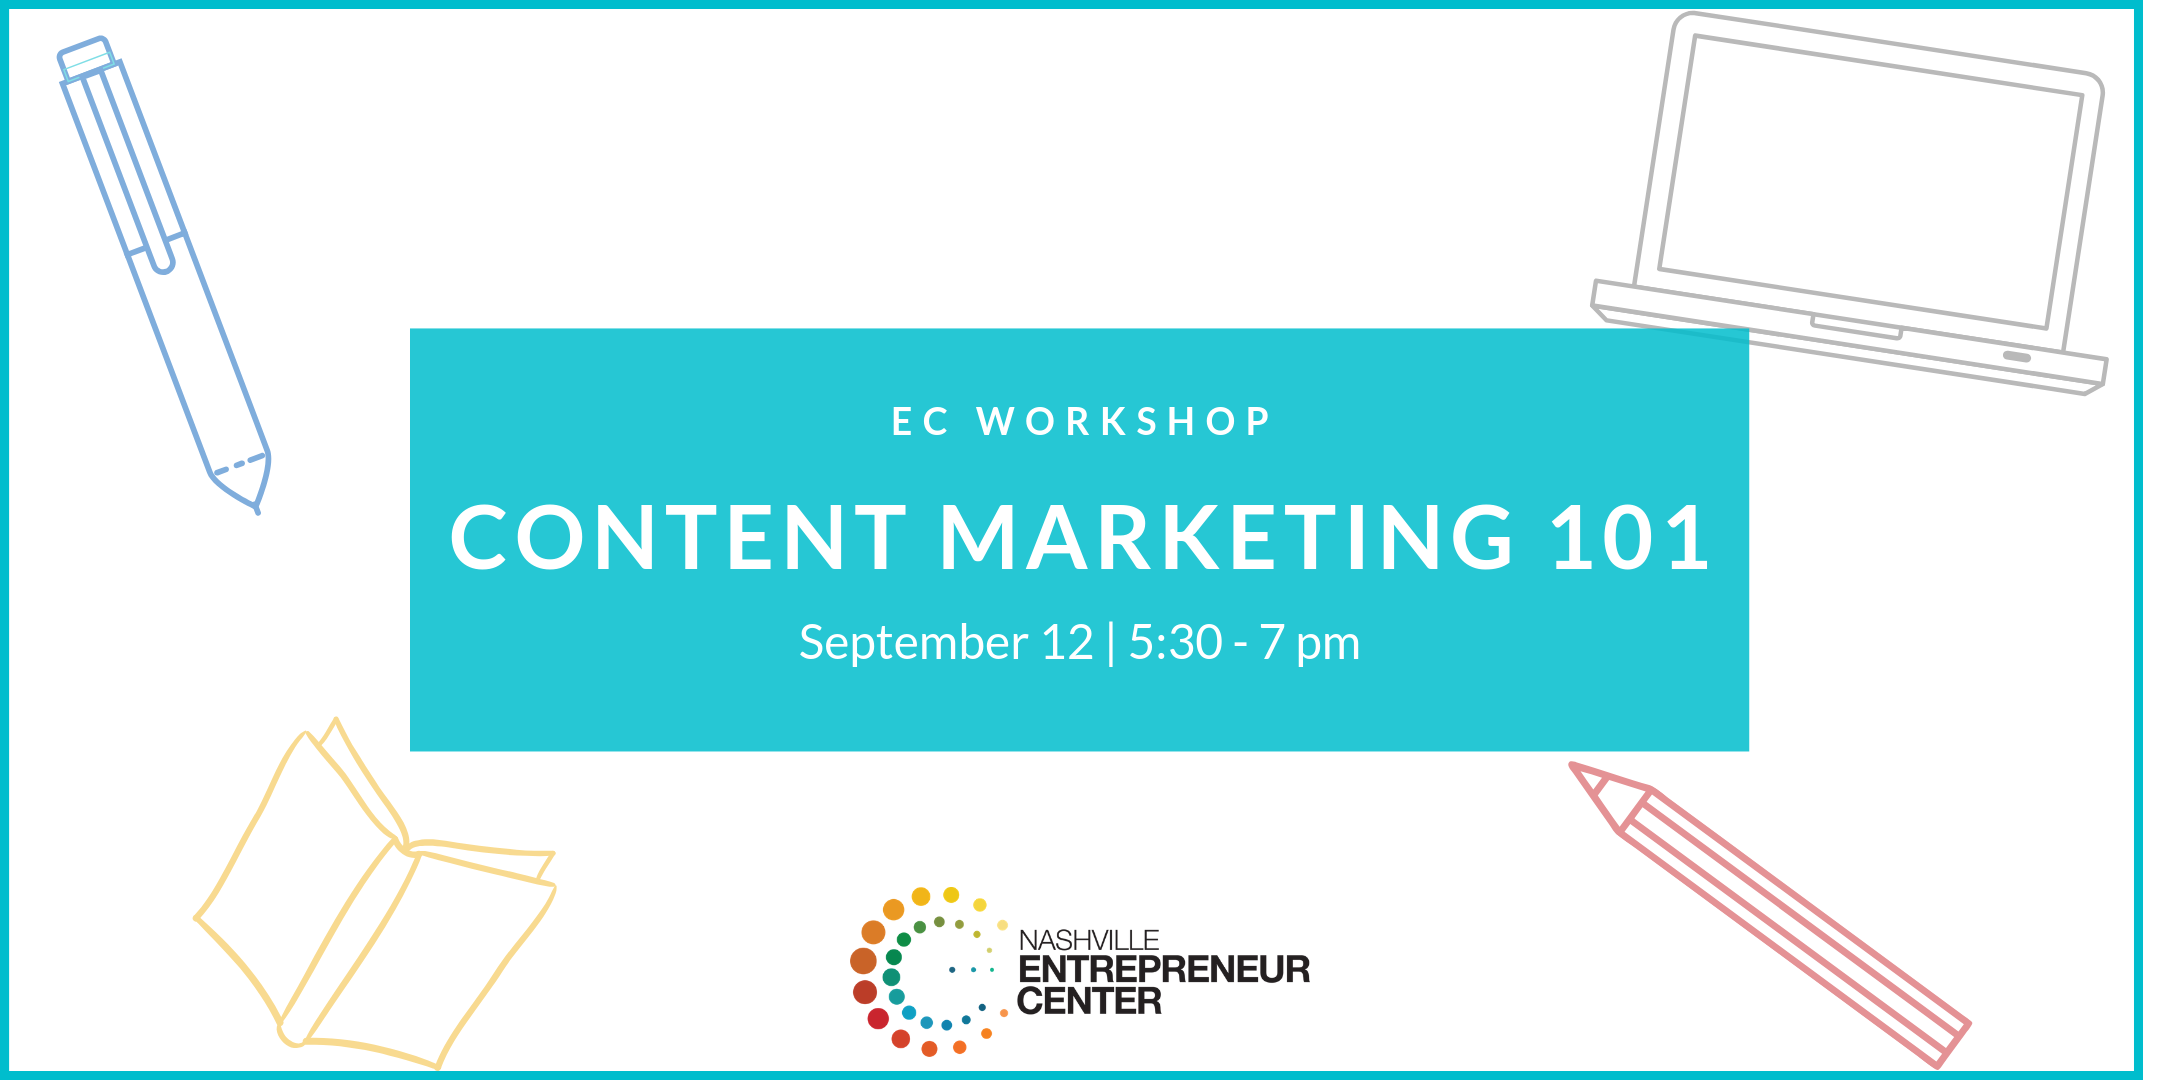 How to build a strategy and create content that attracts potential clients, the basics of social media content creation, DIY entrepreneur tools and tricks, and General Q&A.